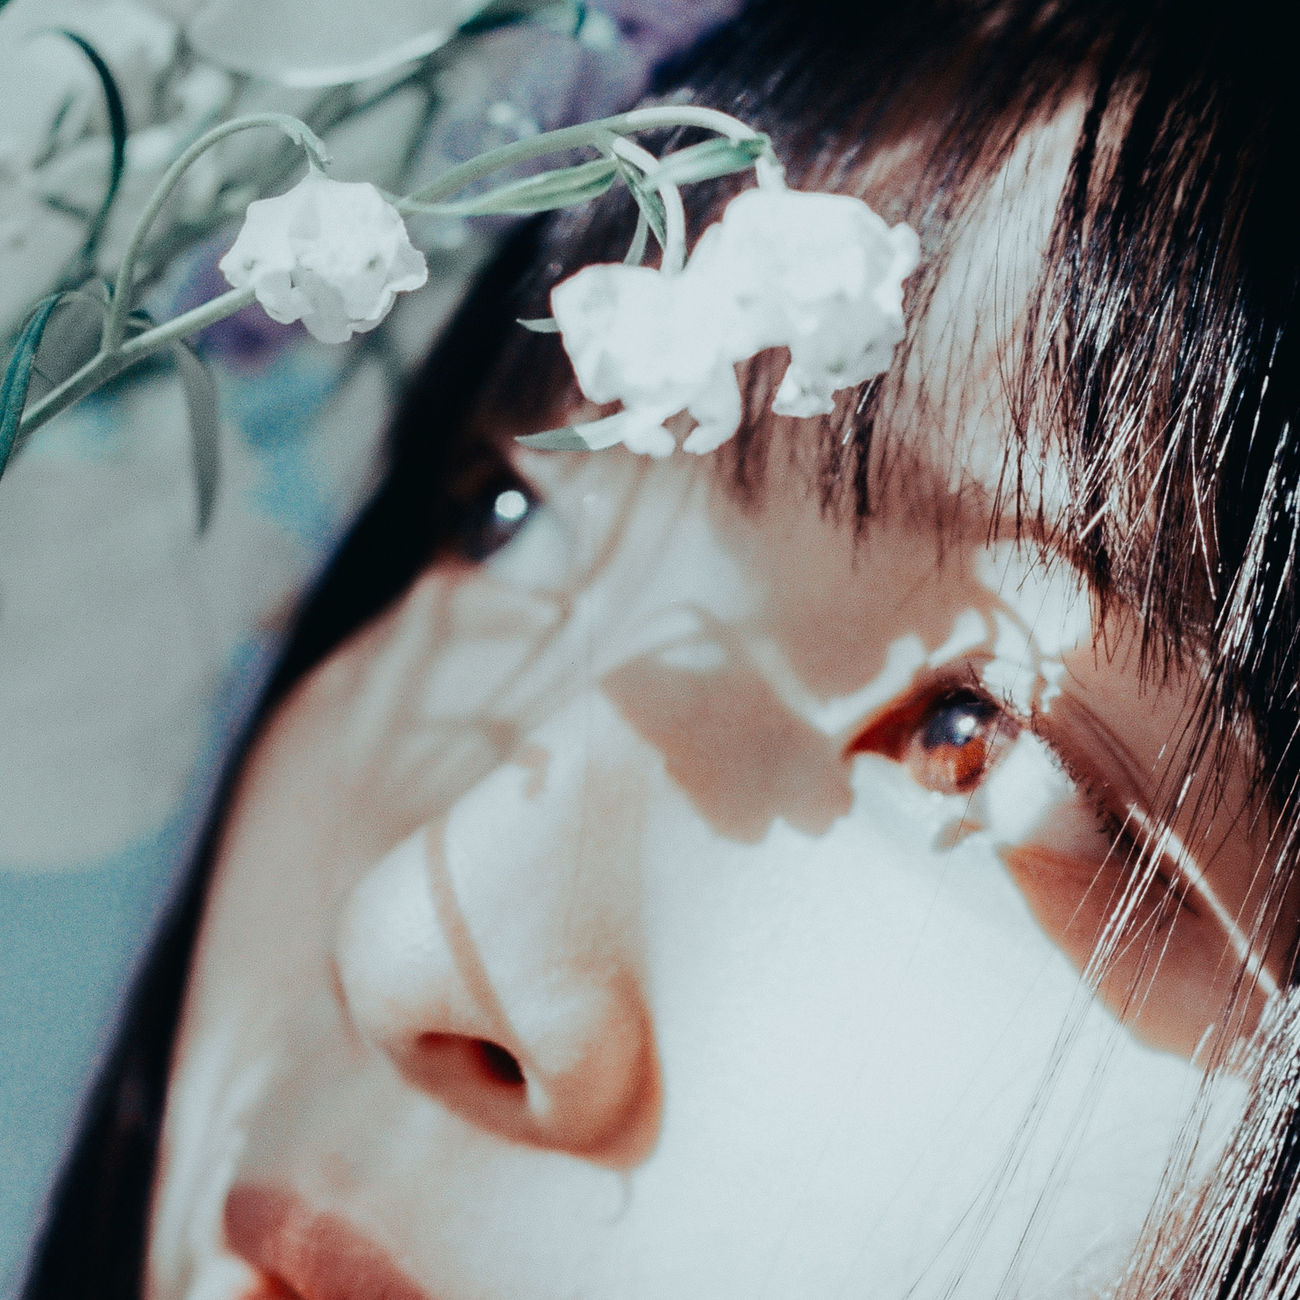 Childhood Close-up Day Flower Fragility One Person Outdoors People Real People The Portraitist - 2017 EyeEm Awards Young Adult